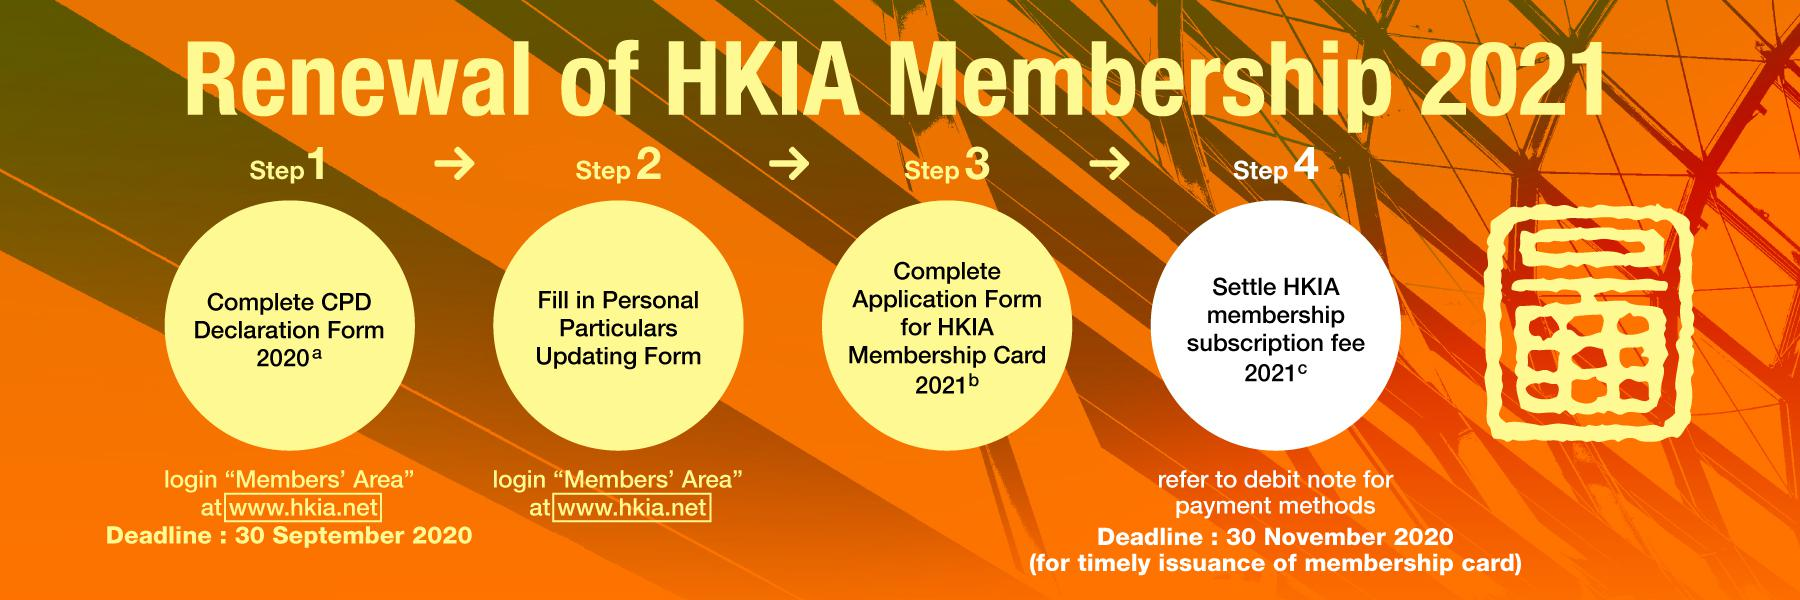 Renewal of HKIA Membership 2021